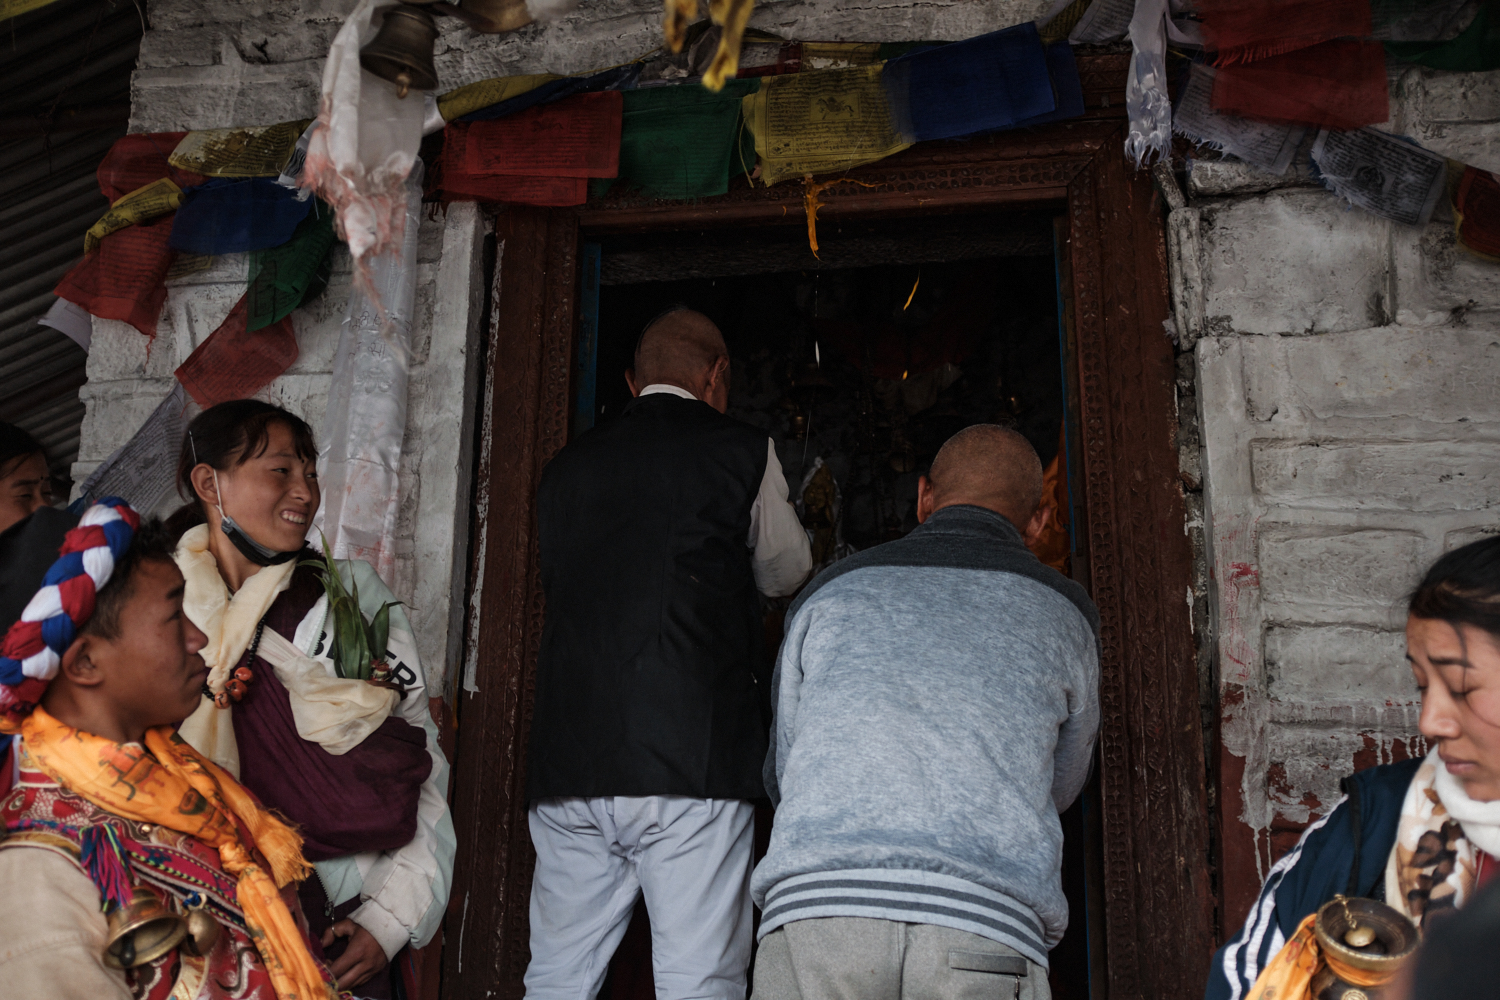 Observers react to an egg being thrown at the temple's door frame after the completion of a competition